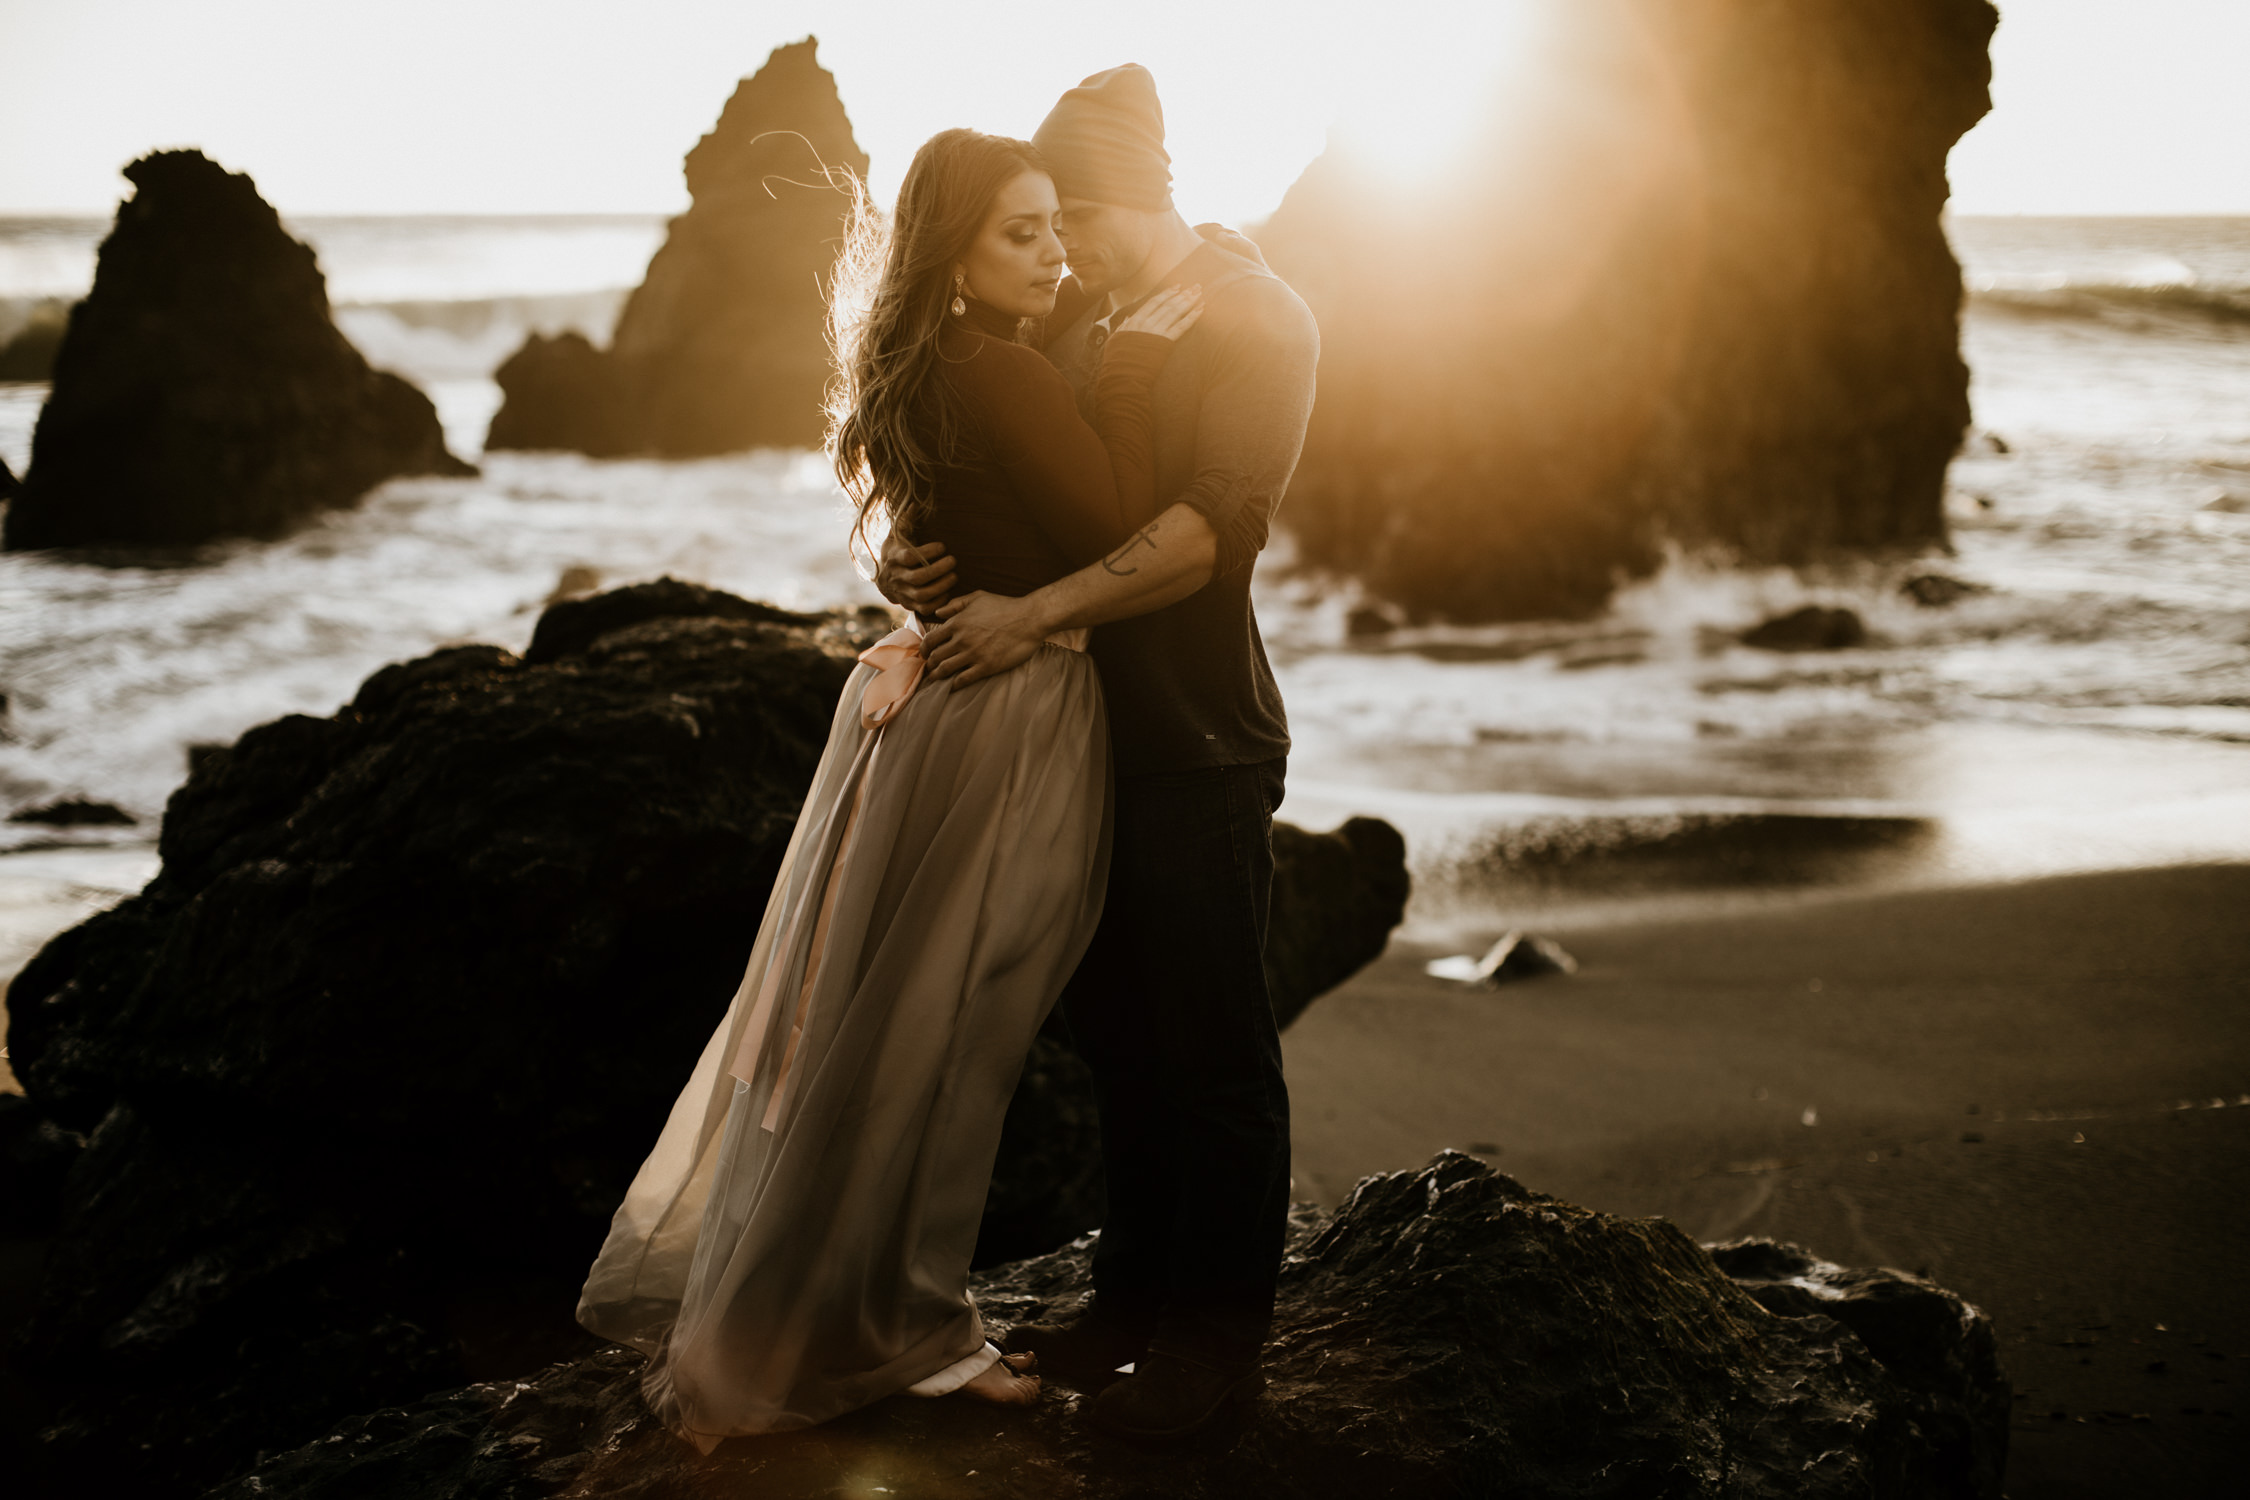 couple-intimate-engagement-session-sausalito-california-52.jpg